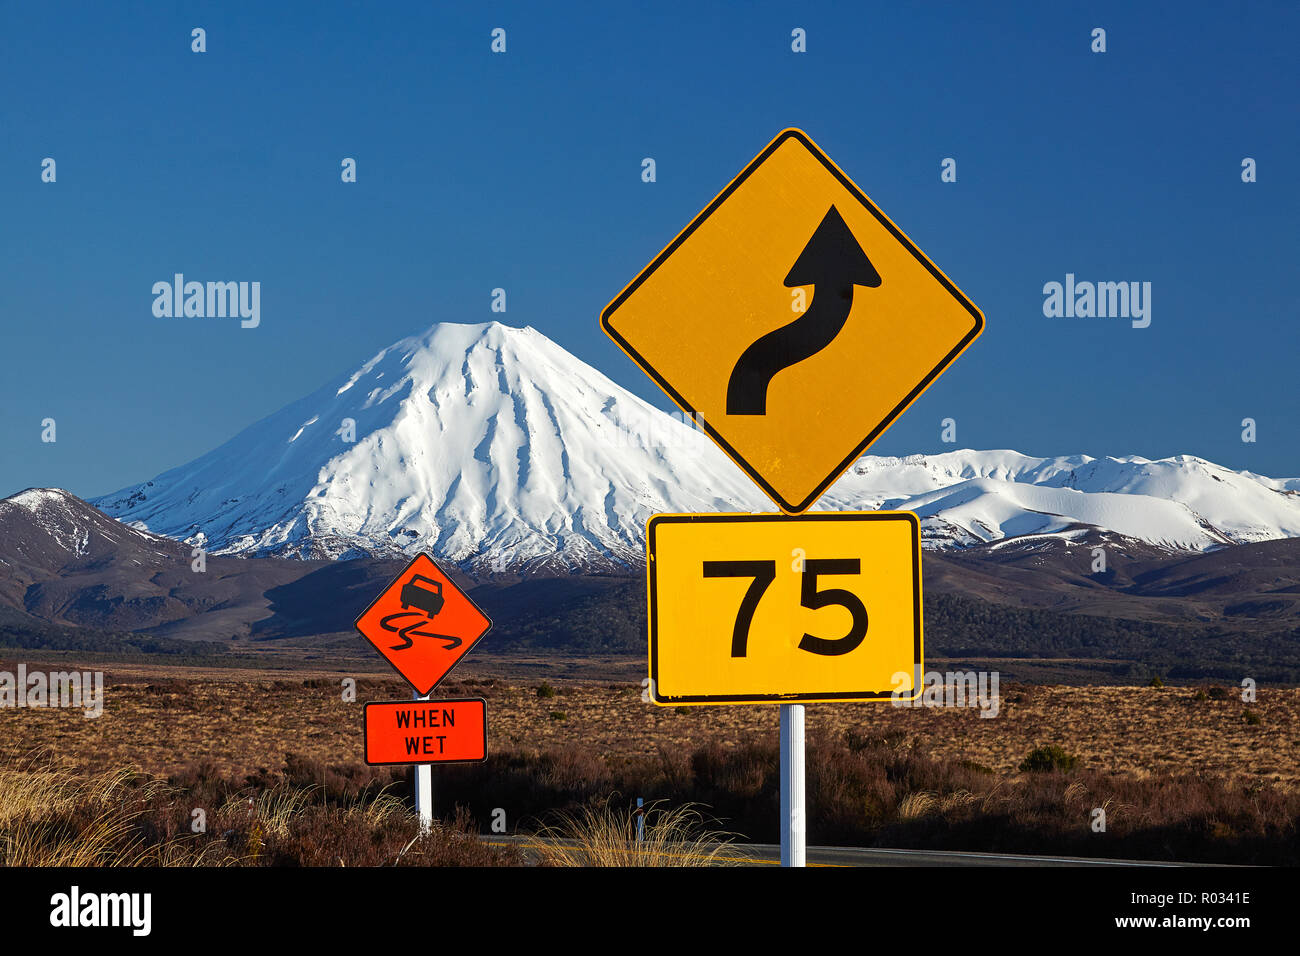 Road signs on Desert Road and Mt Ngauruhoe, Tongariro National Park, Central Plateau, North Island, New Zealand - Stock Image